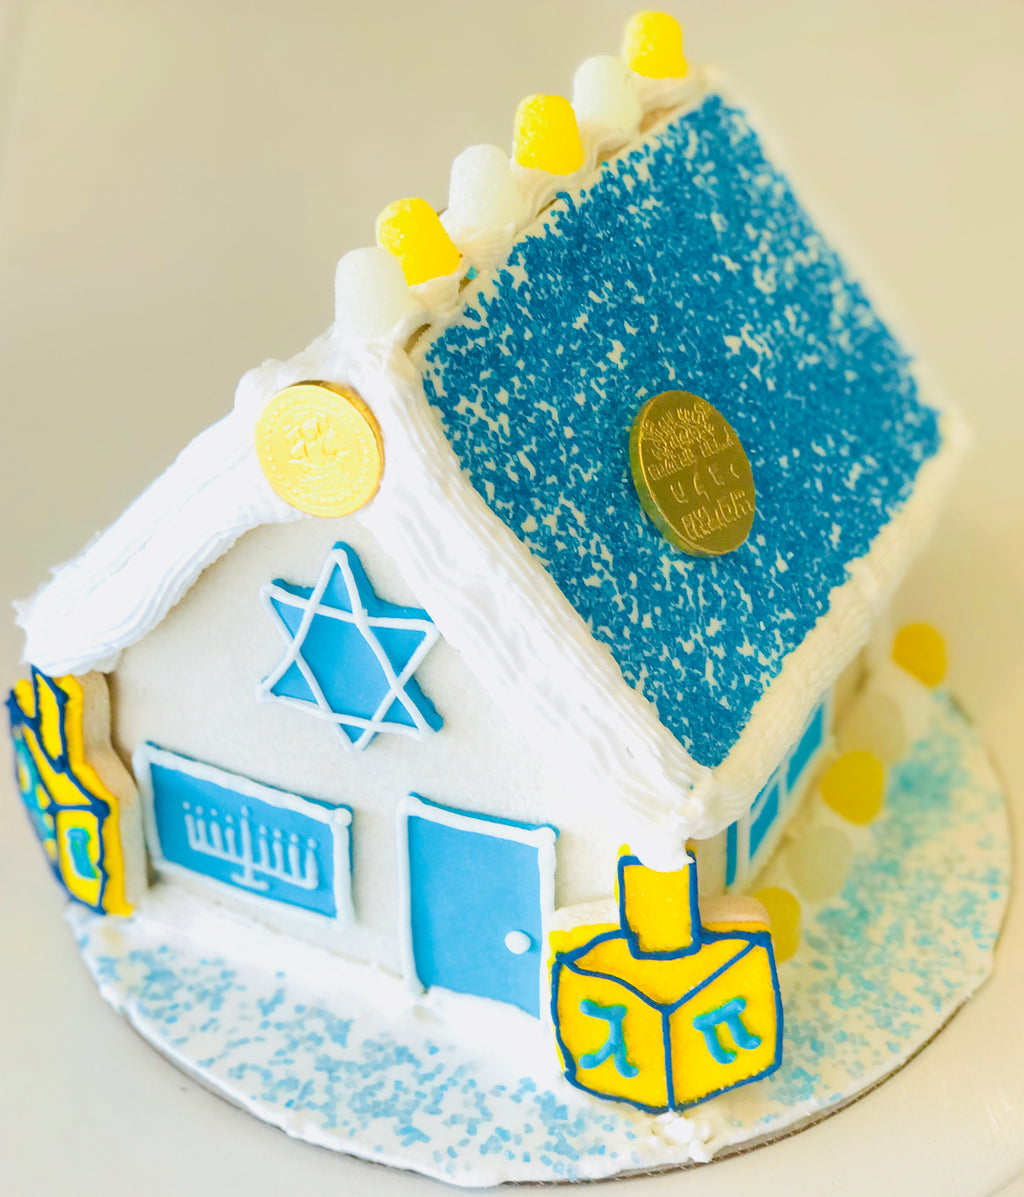 HOLIDAY HANUKKAH HOUSE